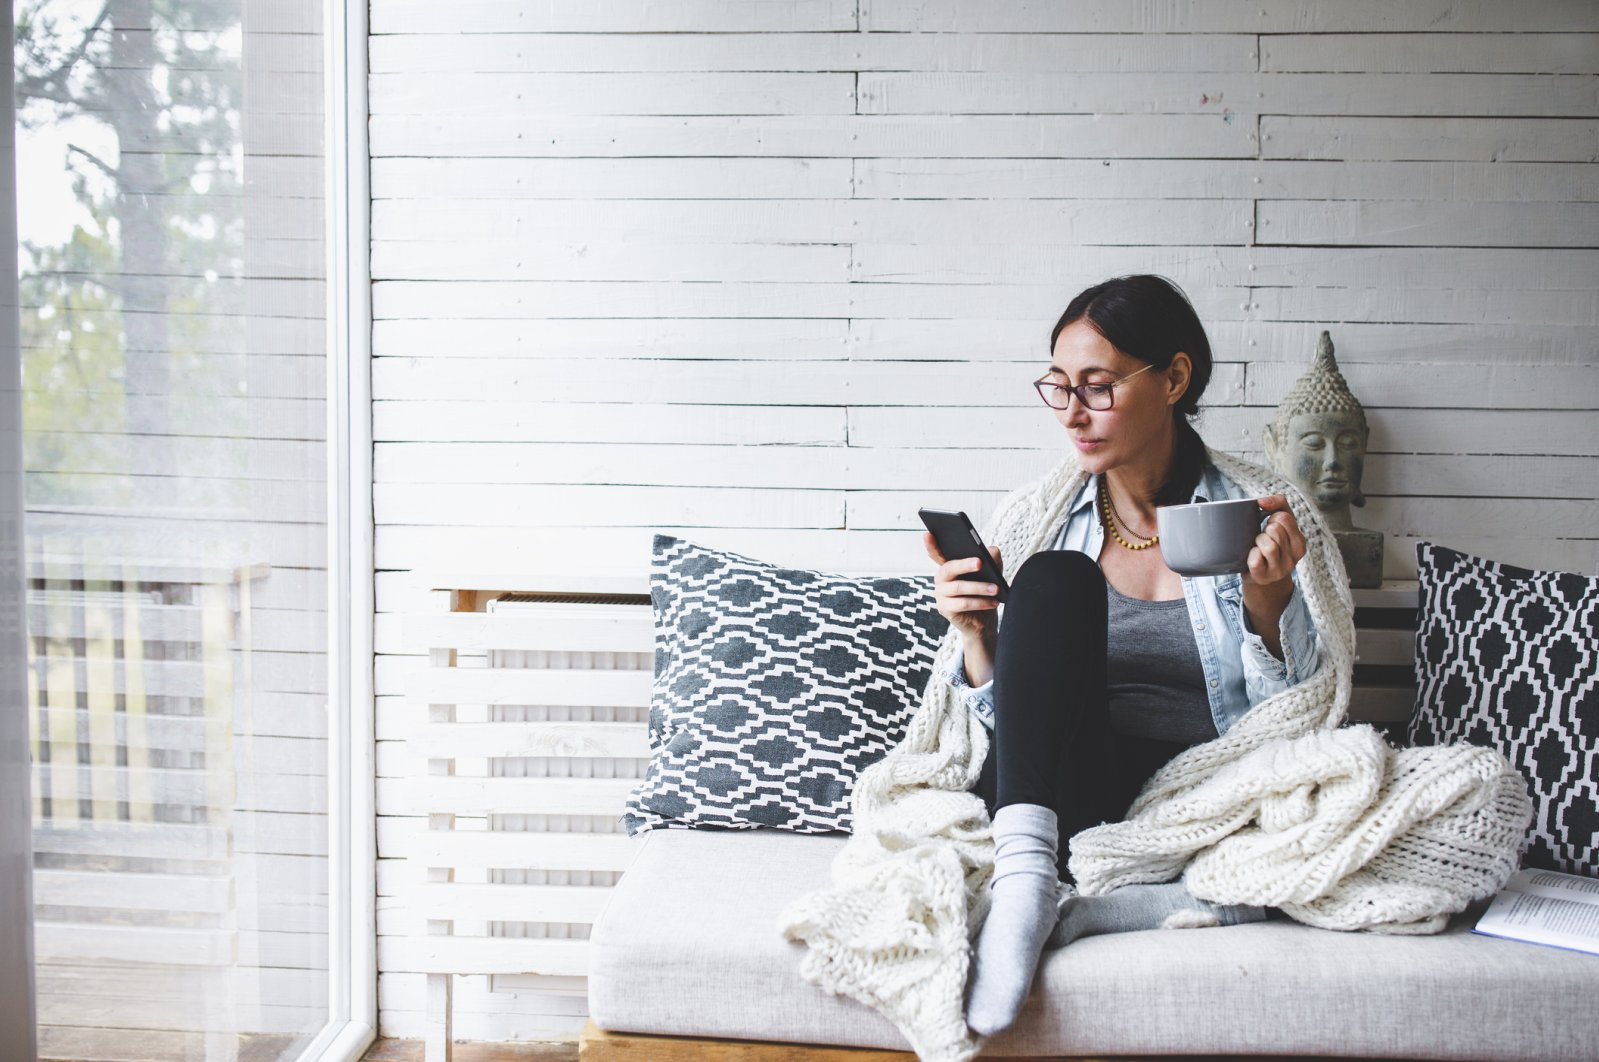 When another day stuck at home seems unbearable, take some time to remind yourself of the many important reasons to stay inside. (iStock Photo)